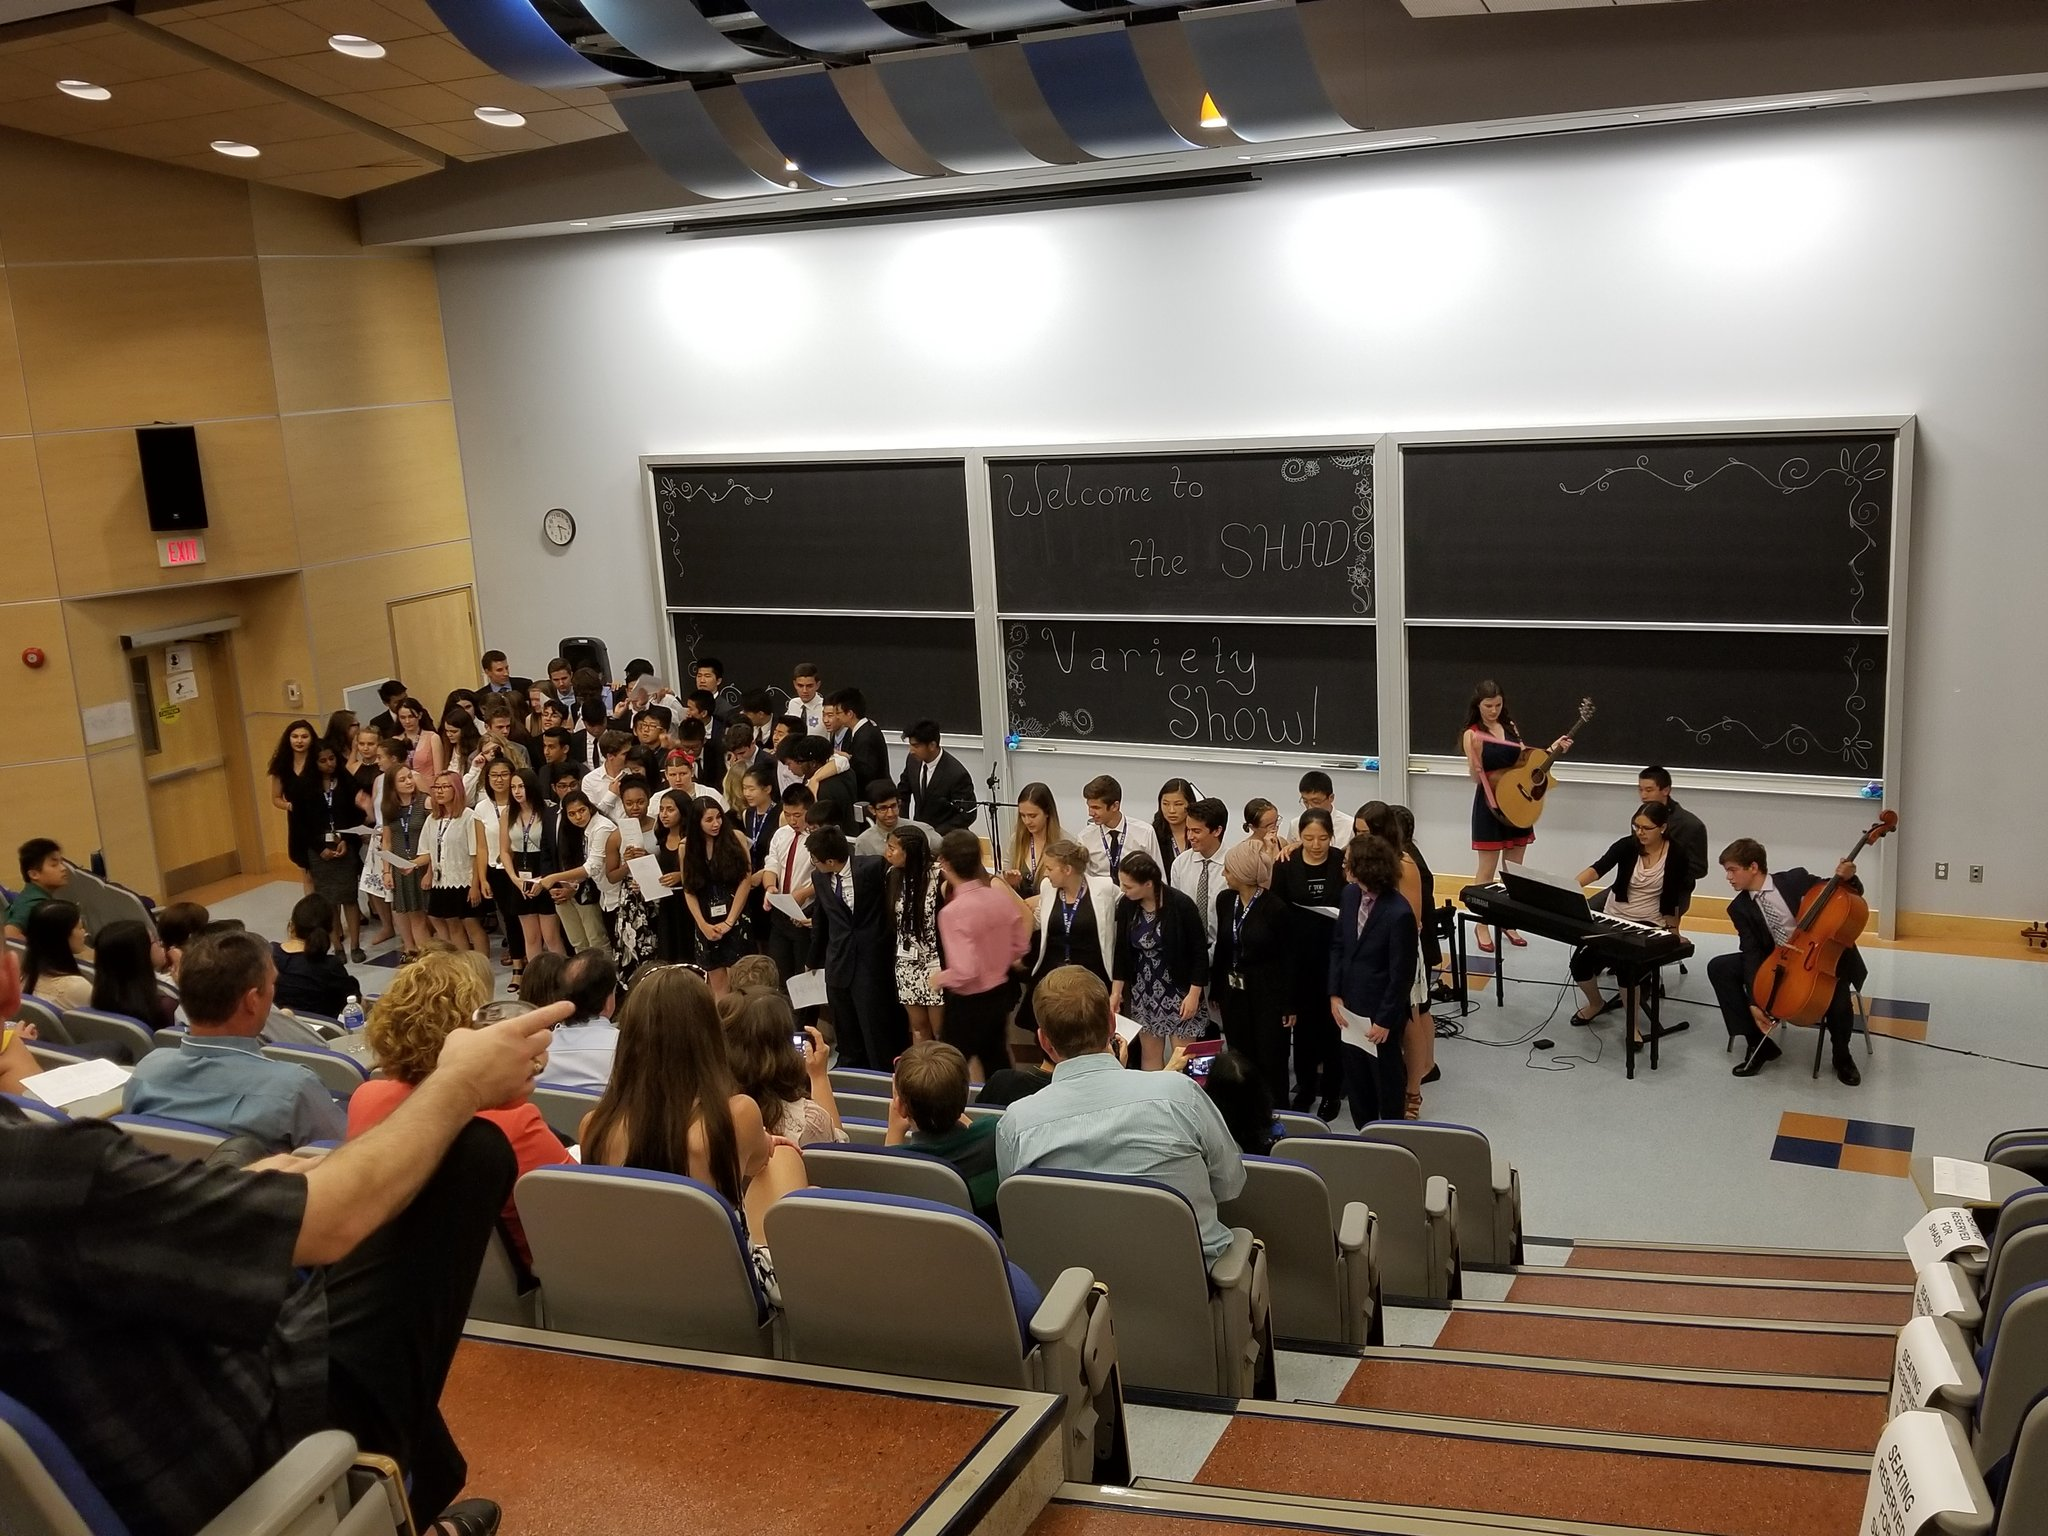 Amazing finale to the @ShadUNB variety show. #SHADOpen #SHAD2017 @SHADnetwork https://t.co/TP9BhMX2s4